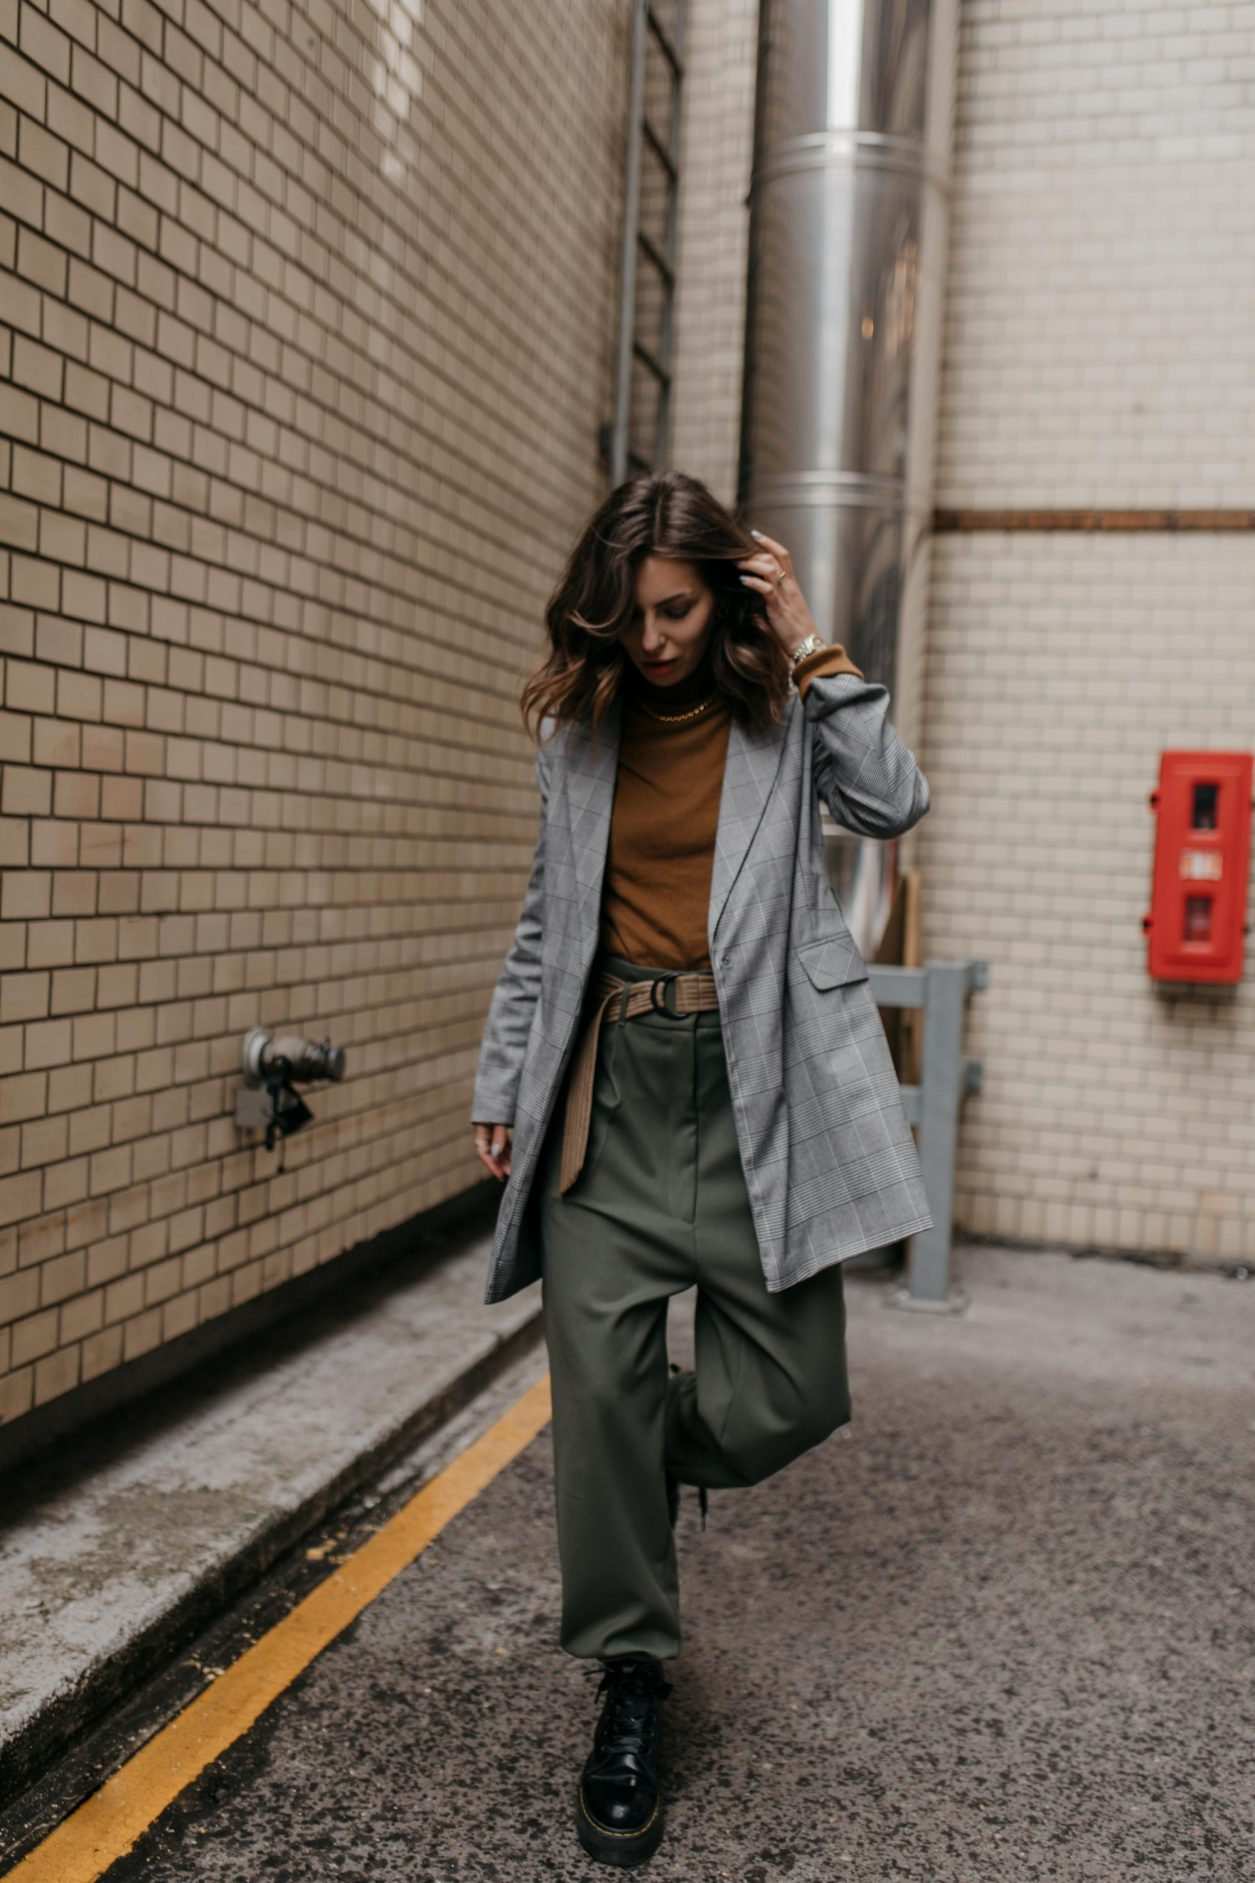 Streetstyle by Masha Sedgwick | Fashion blogger from Berlin, Germany | Everyday outfit inspiration, business casual looks, minimalistic, effortless cool | Outfit: grey checked Topshop blazer, mustard brown Uniqlo roll-neck, khaki green military Munthe pants,  black leather Dr.Martens boots #ootd